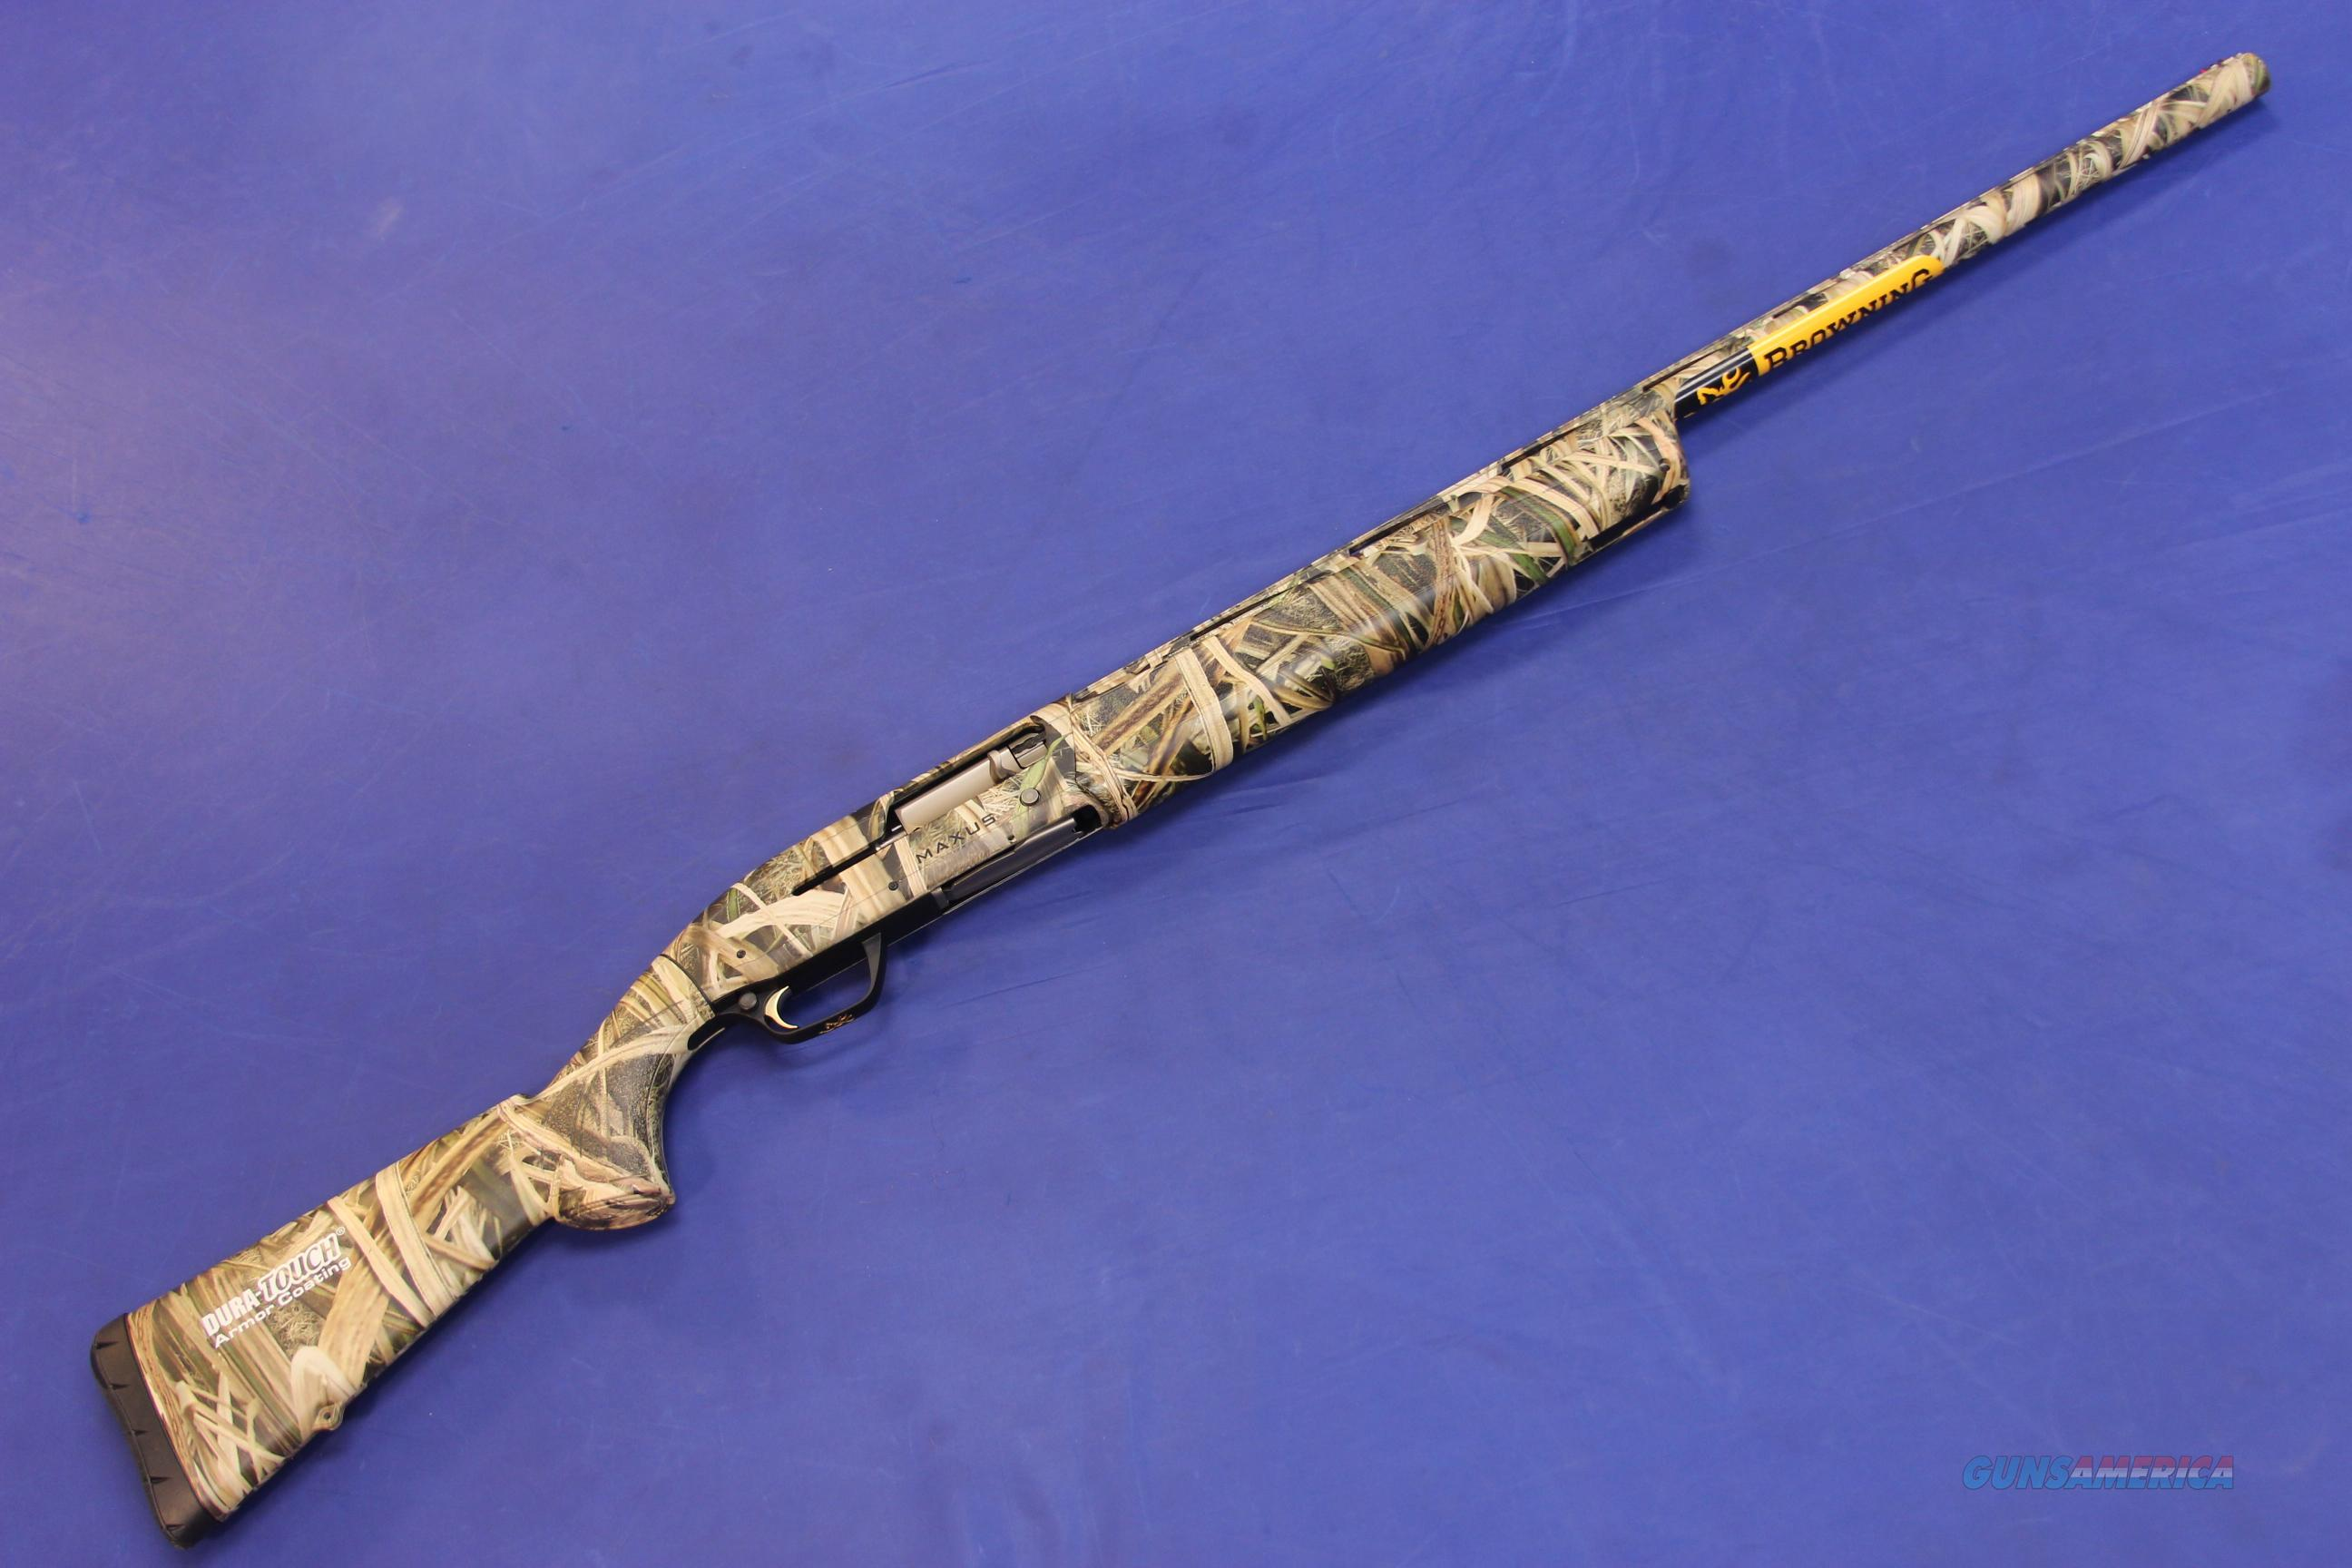 BROWNING MAXUS 12 SHADOW GRASS CAMO 12 GA - NEW!  Guns > Shotguns > Browning Shotguns > Autoloaders > Hunting